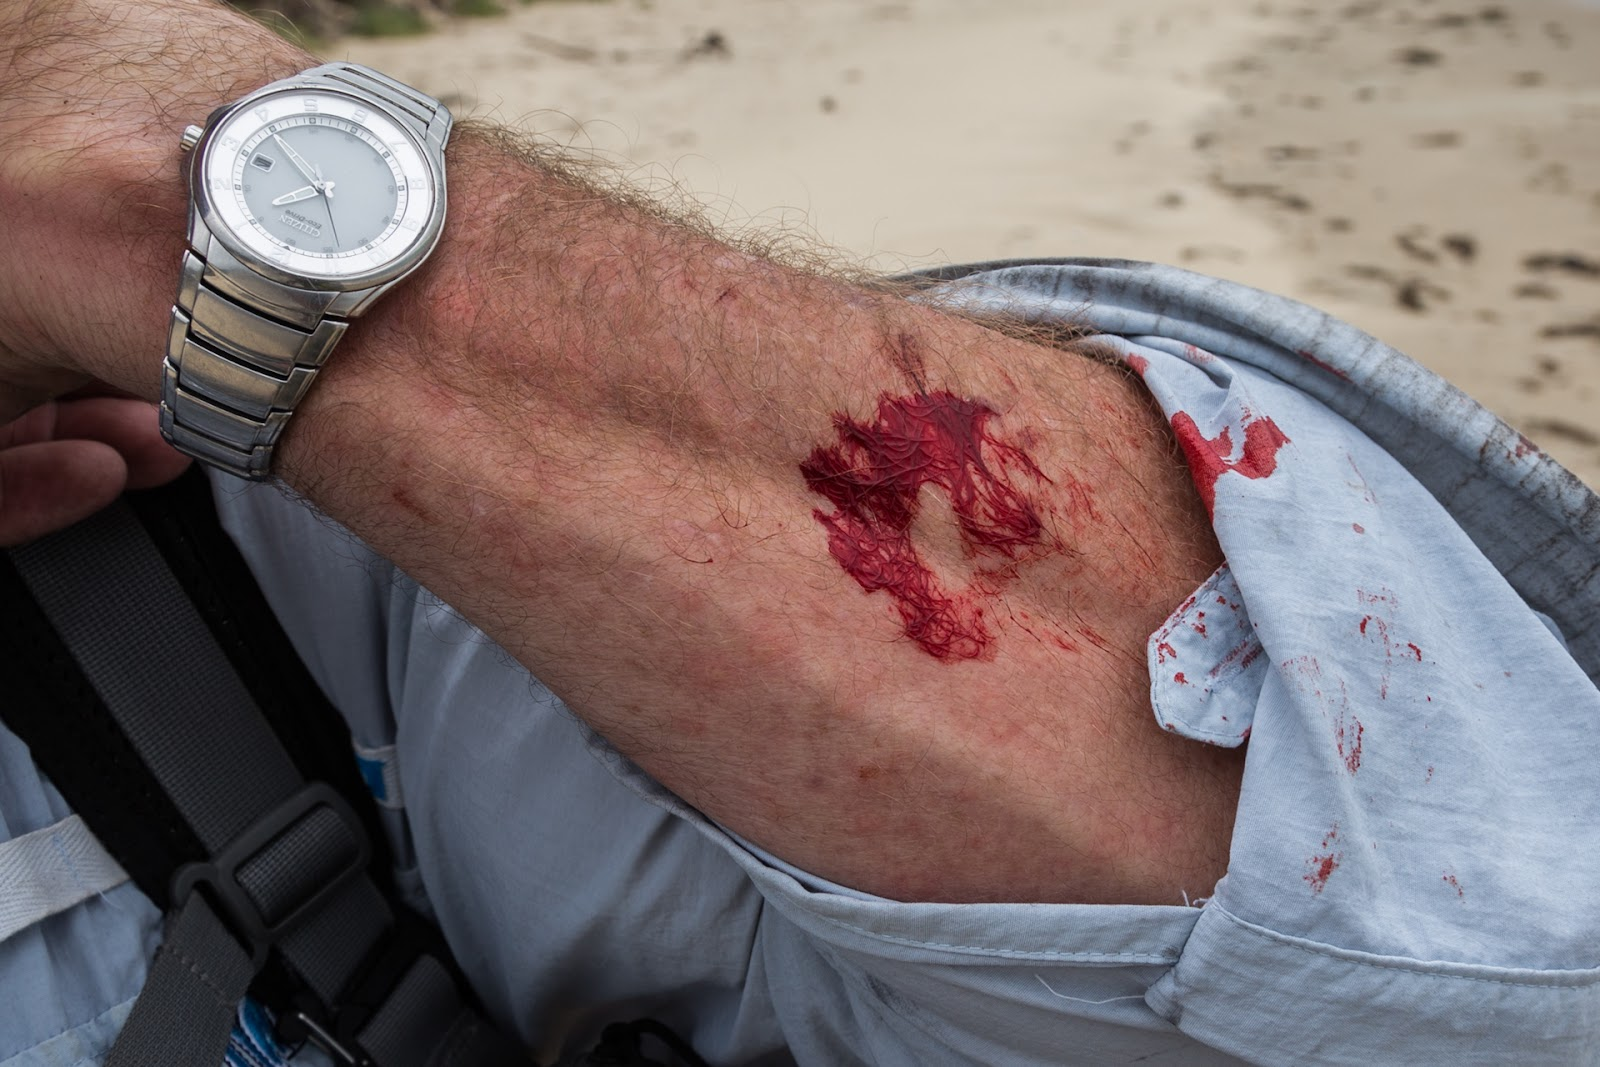 bleeding arm from cut whilst hiking